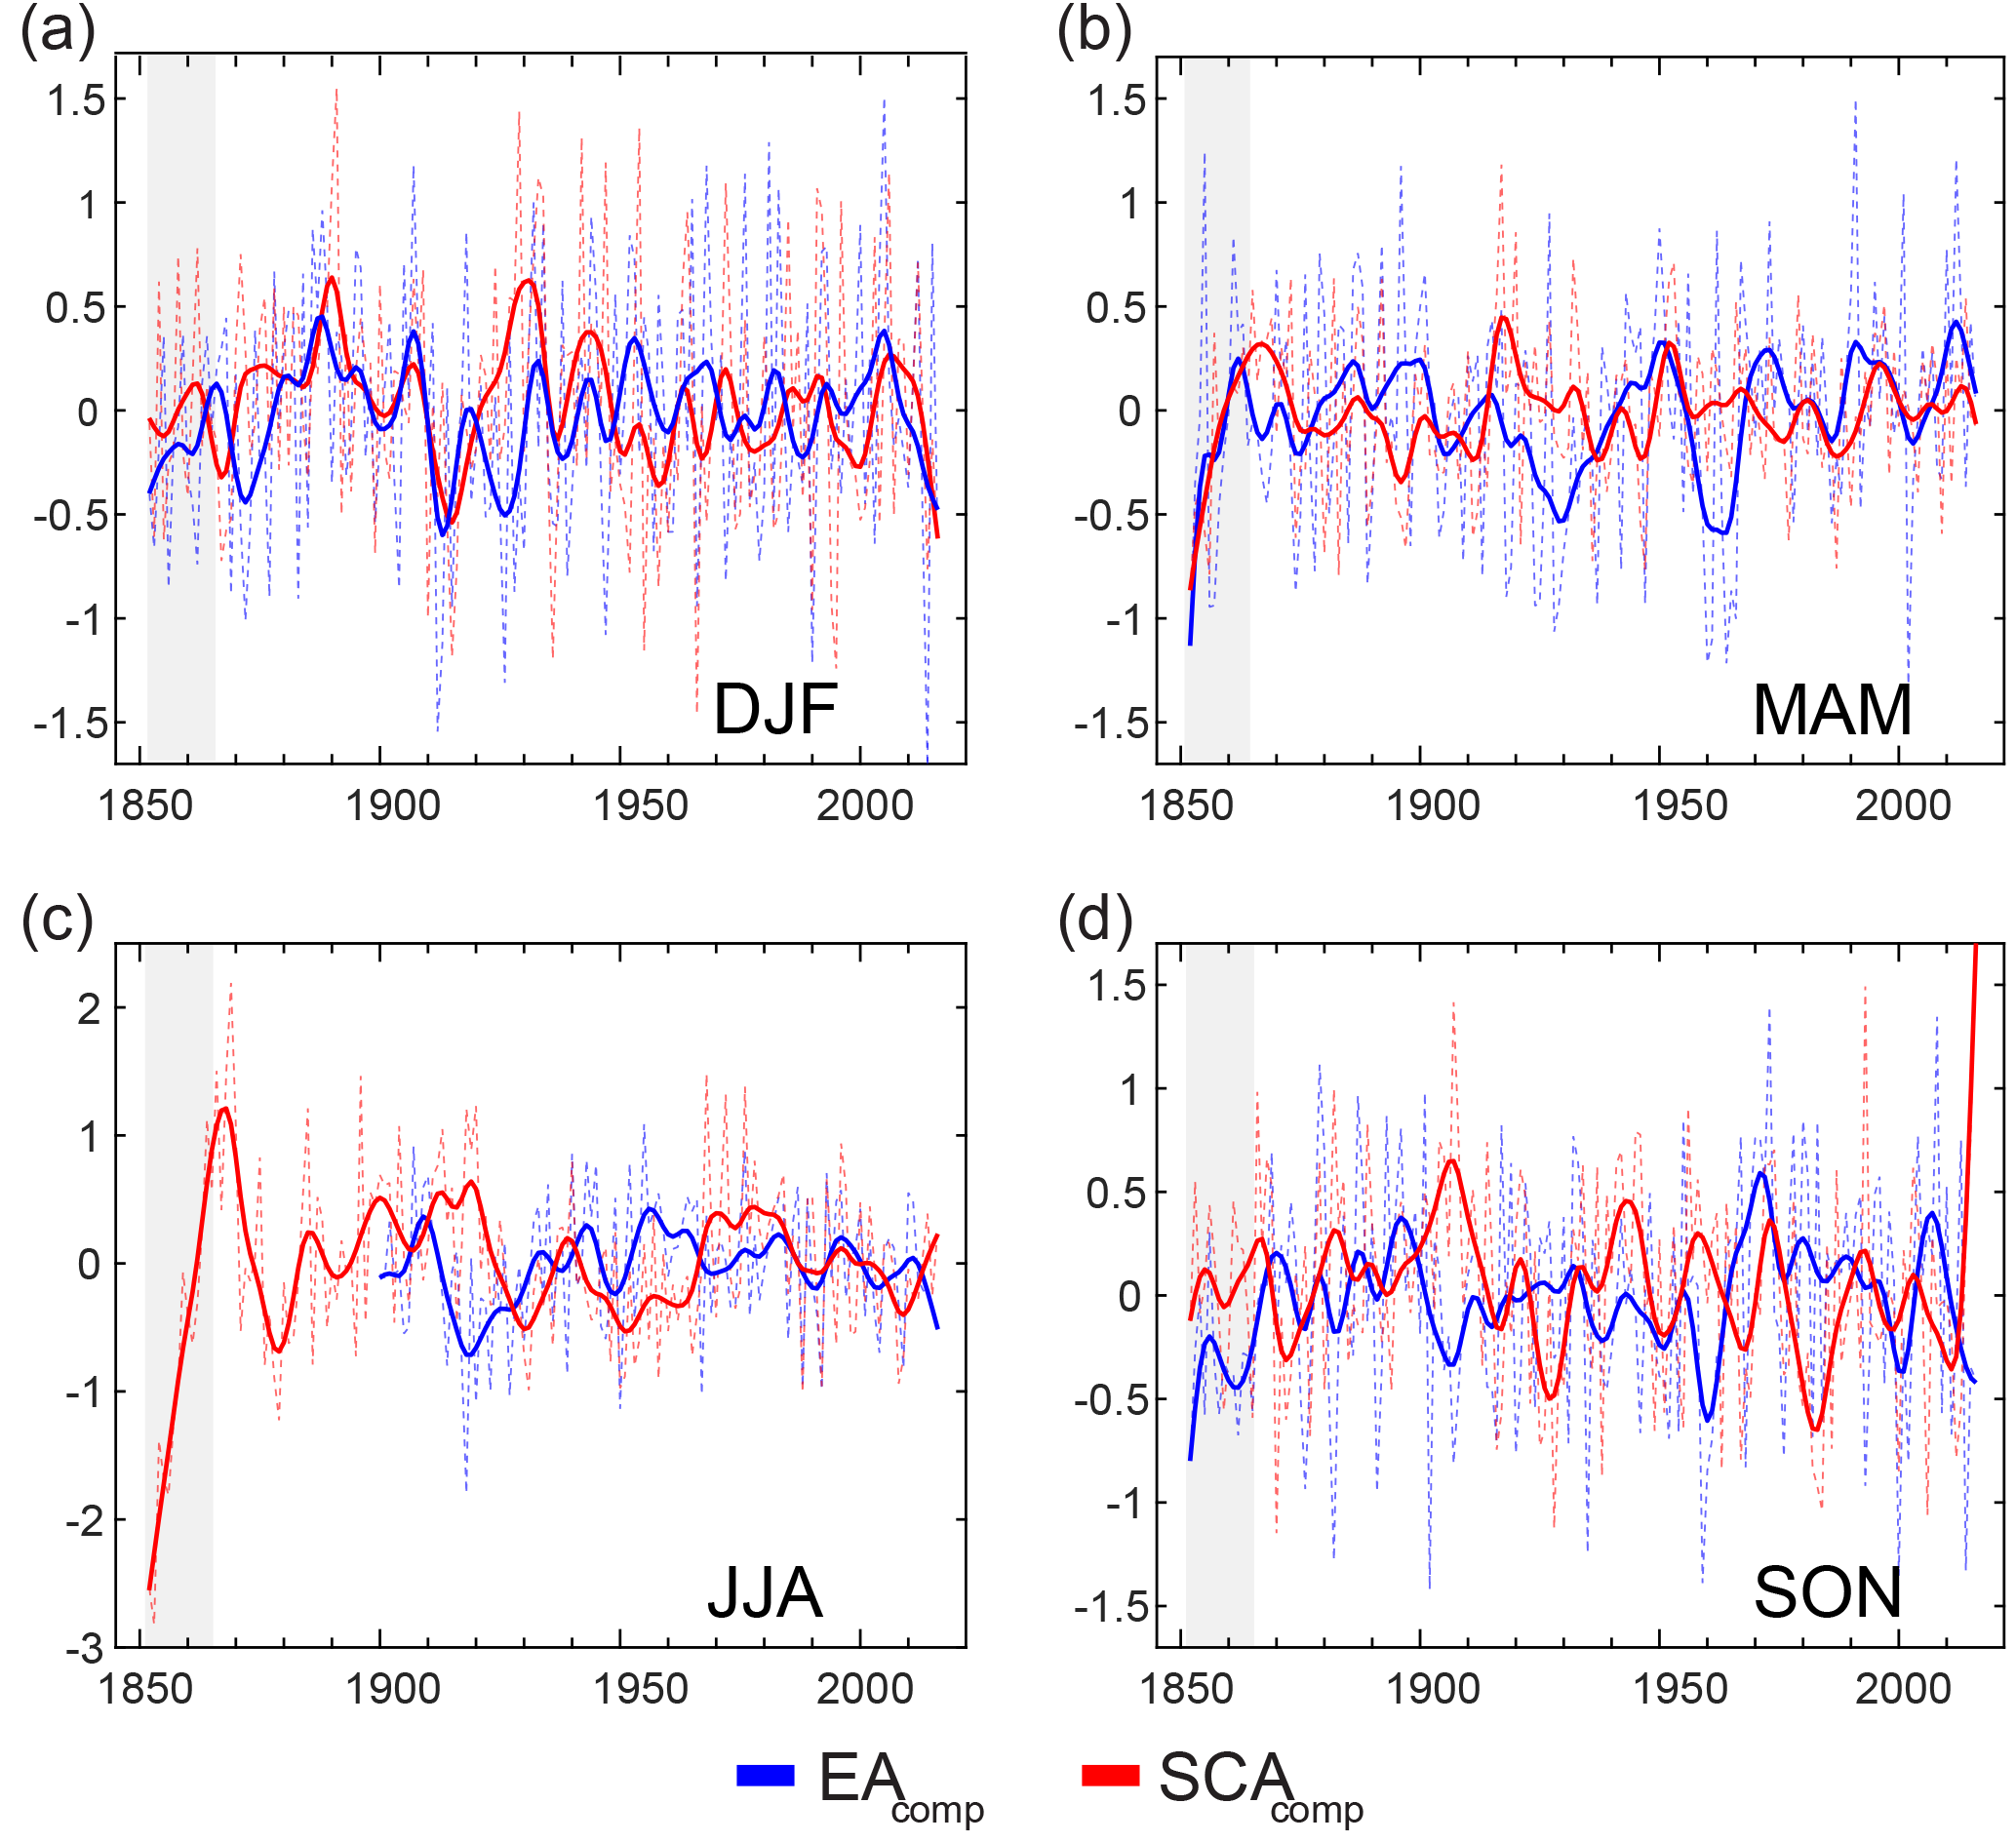 ESSD - Reconciling North Atlantic climate modes: revised